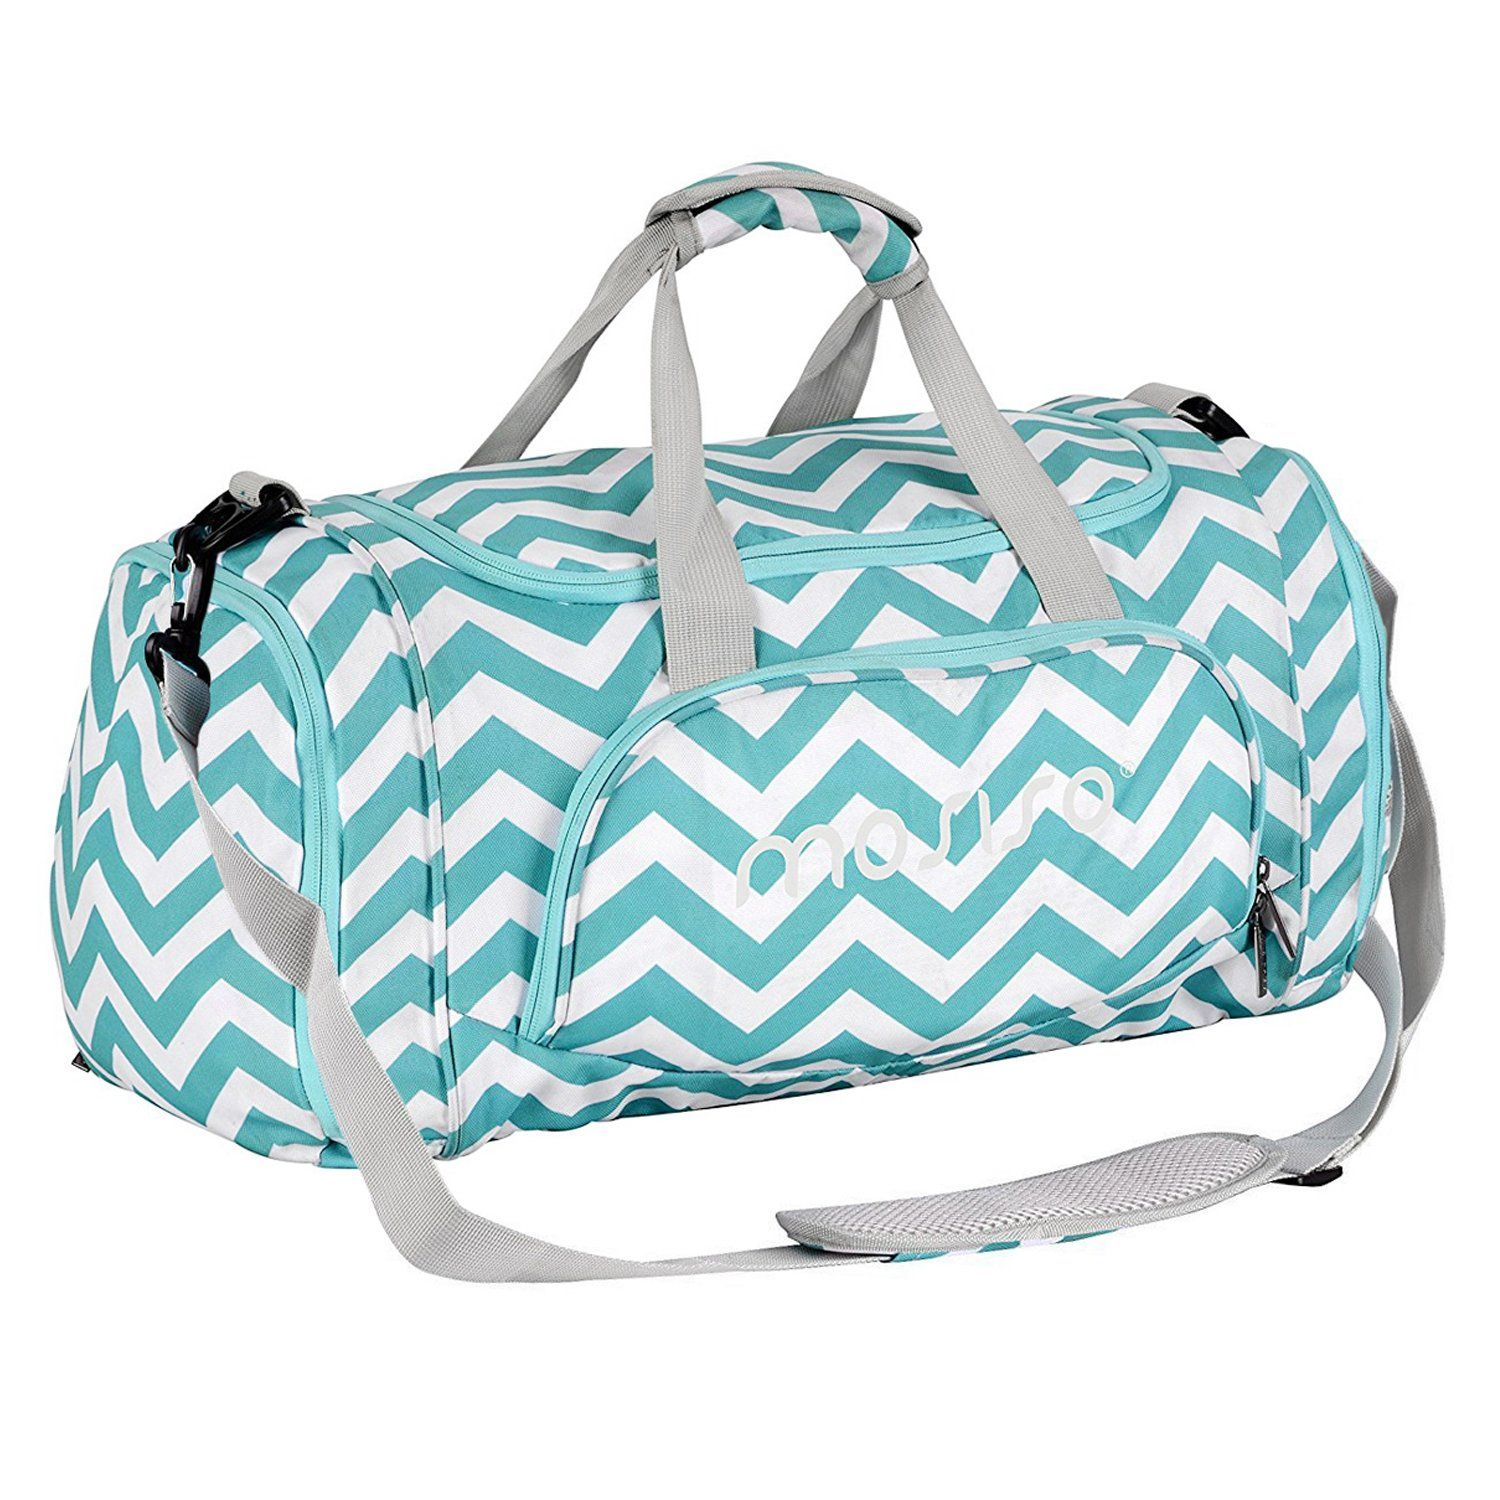 fee753442dd7 Mosiso Polyester Travel Overnight Duffels for Men Ladies Gym Bags ...